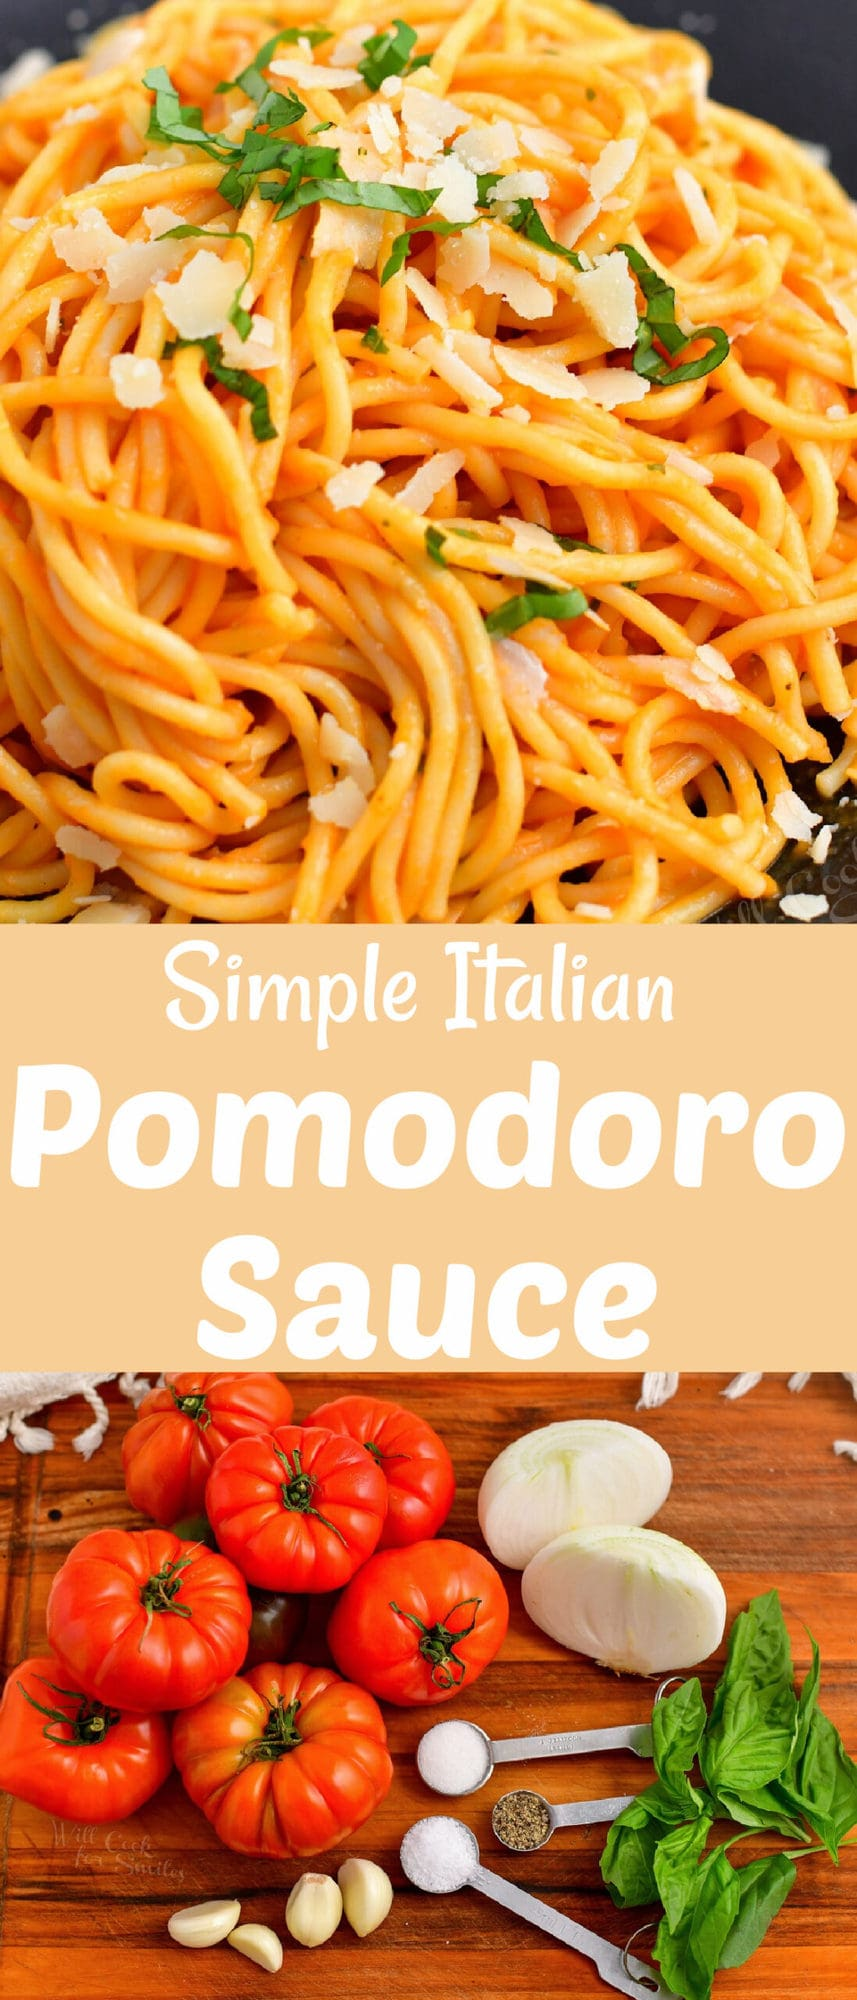 title collage of two images of spaghetti in tomato sauce on top and ingredients on a board